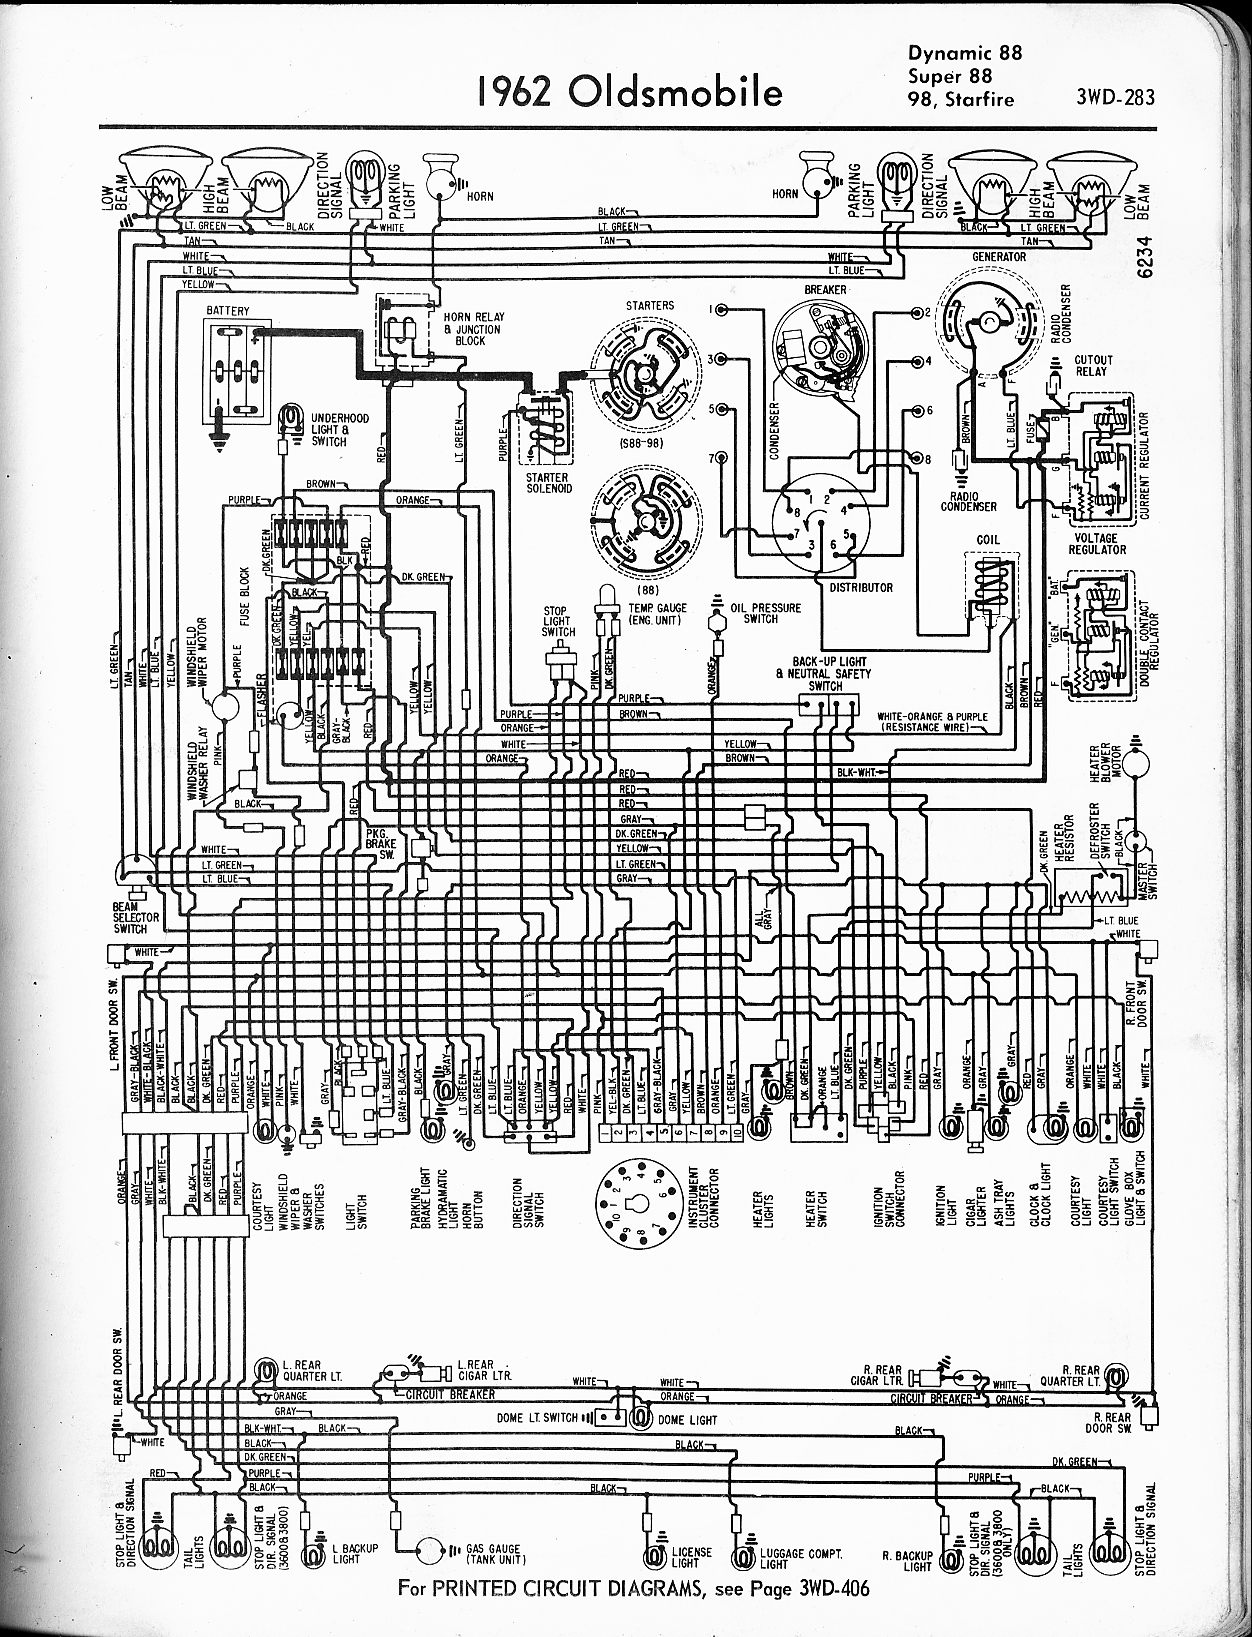 MWire5765 283 oldsmobile wiring diagrams the old car manual project Freightliner Power Window Wiring Diagram at alyssarenee.co